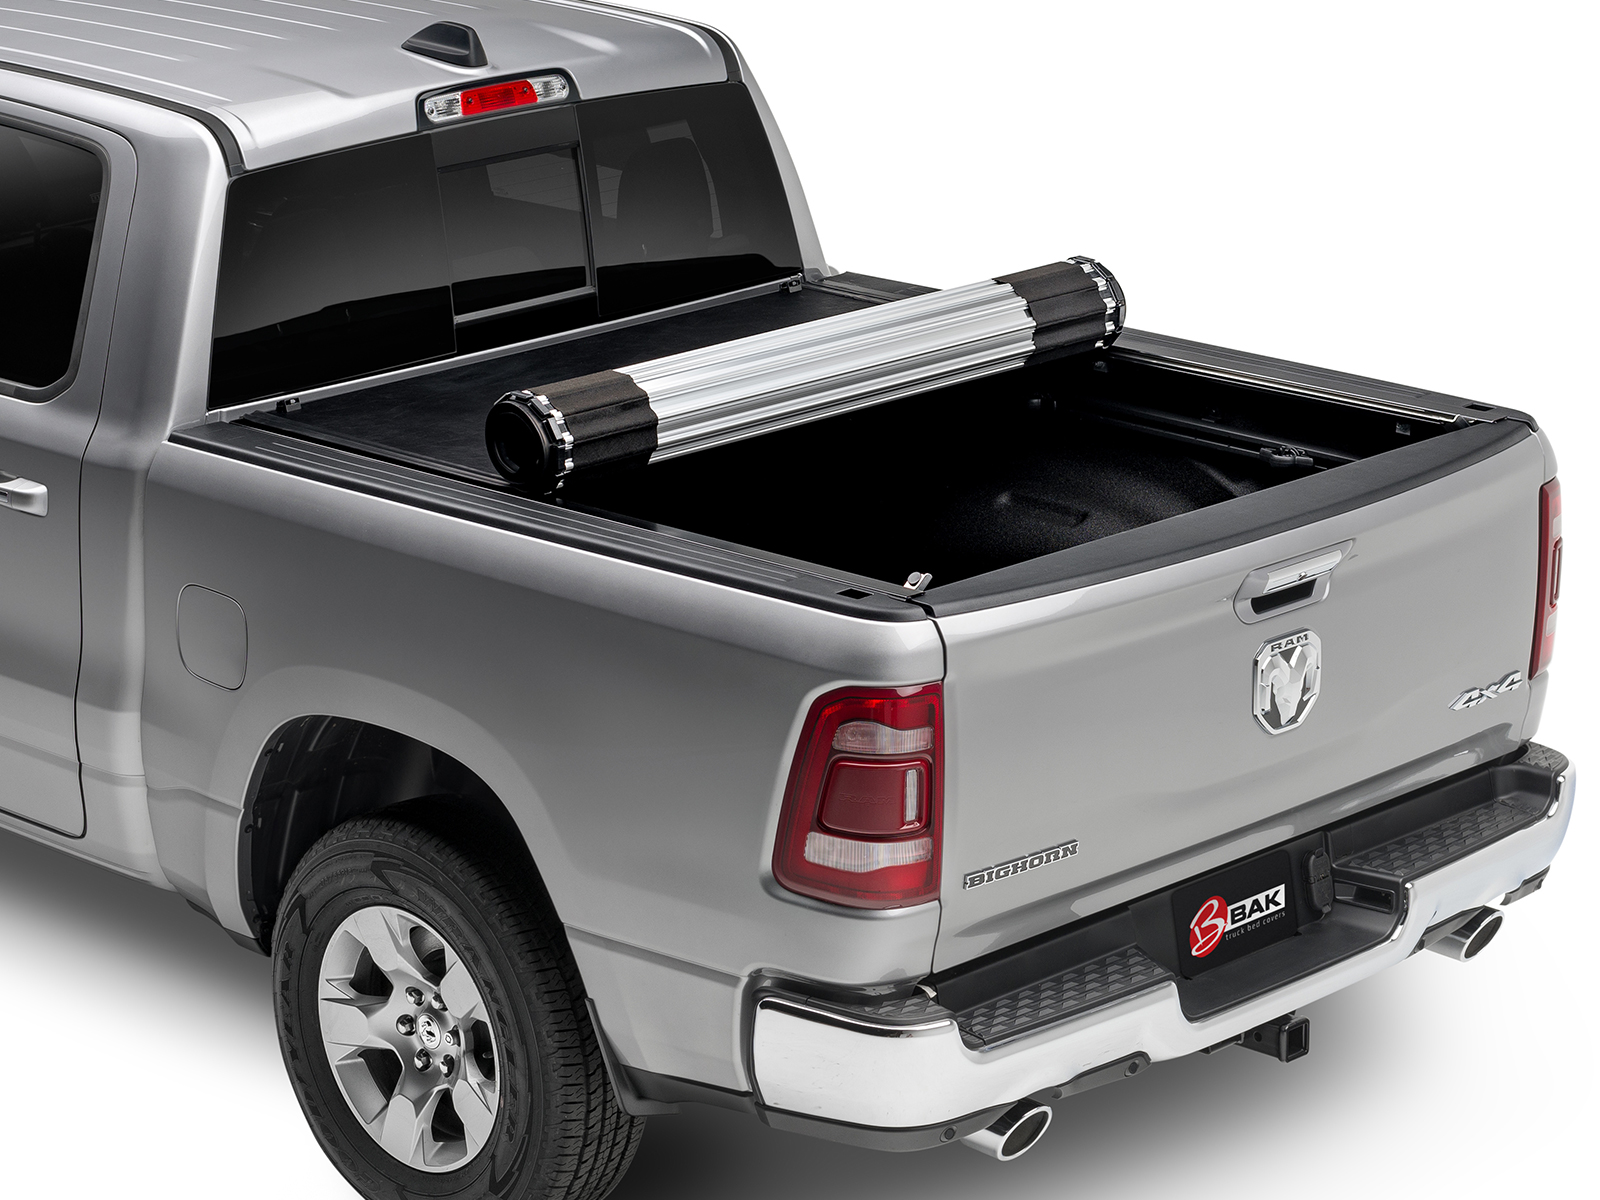 2019 Dodge Ram 1500 Roll Up Tonneau Covers World